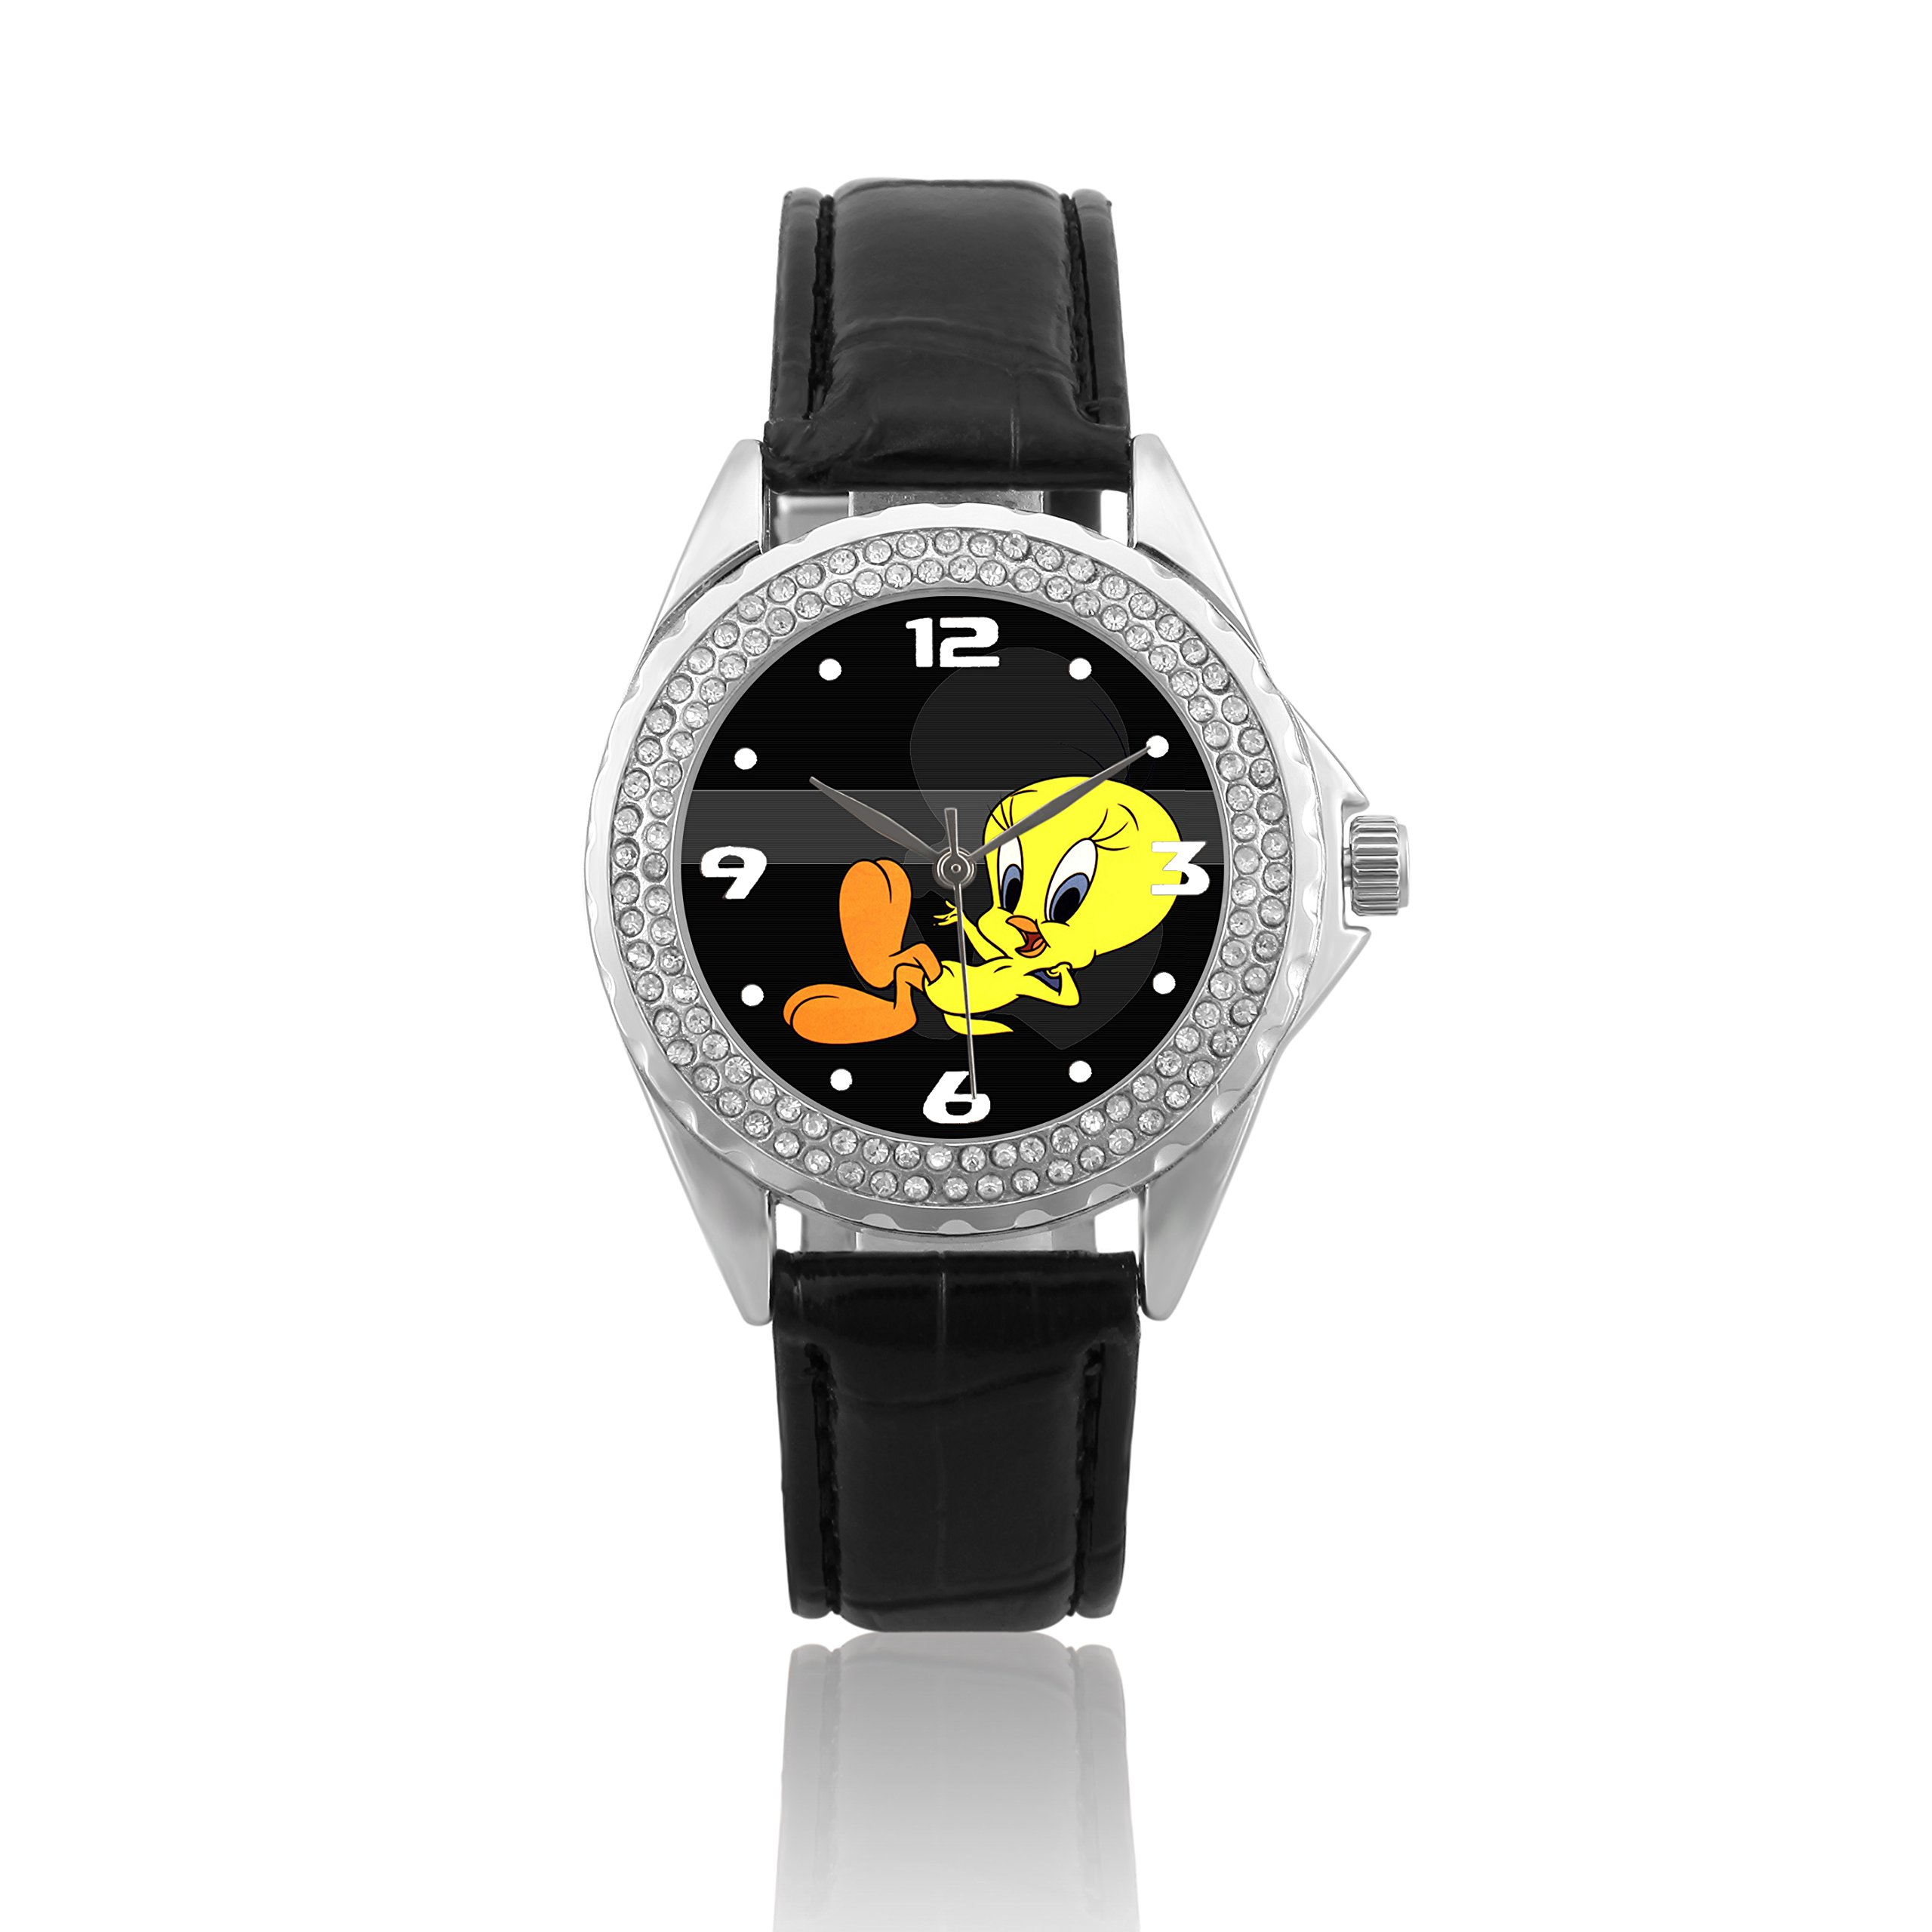 Happy New Year Gifts Wristwatches Crystal USFSC413 Tweety Bird W by Women's Wrist Watches (Image #1)